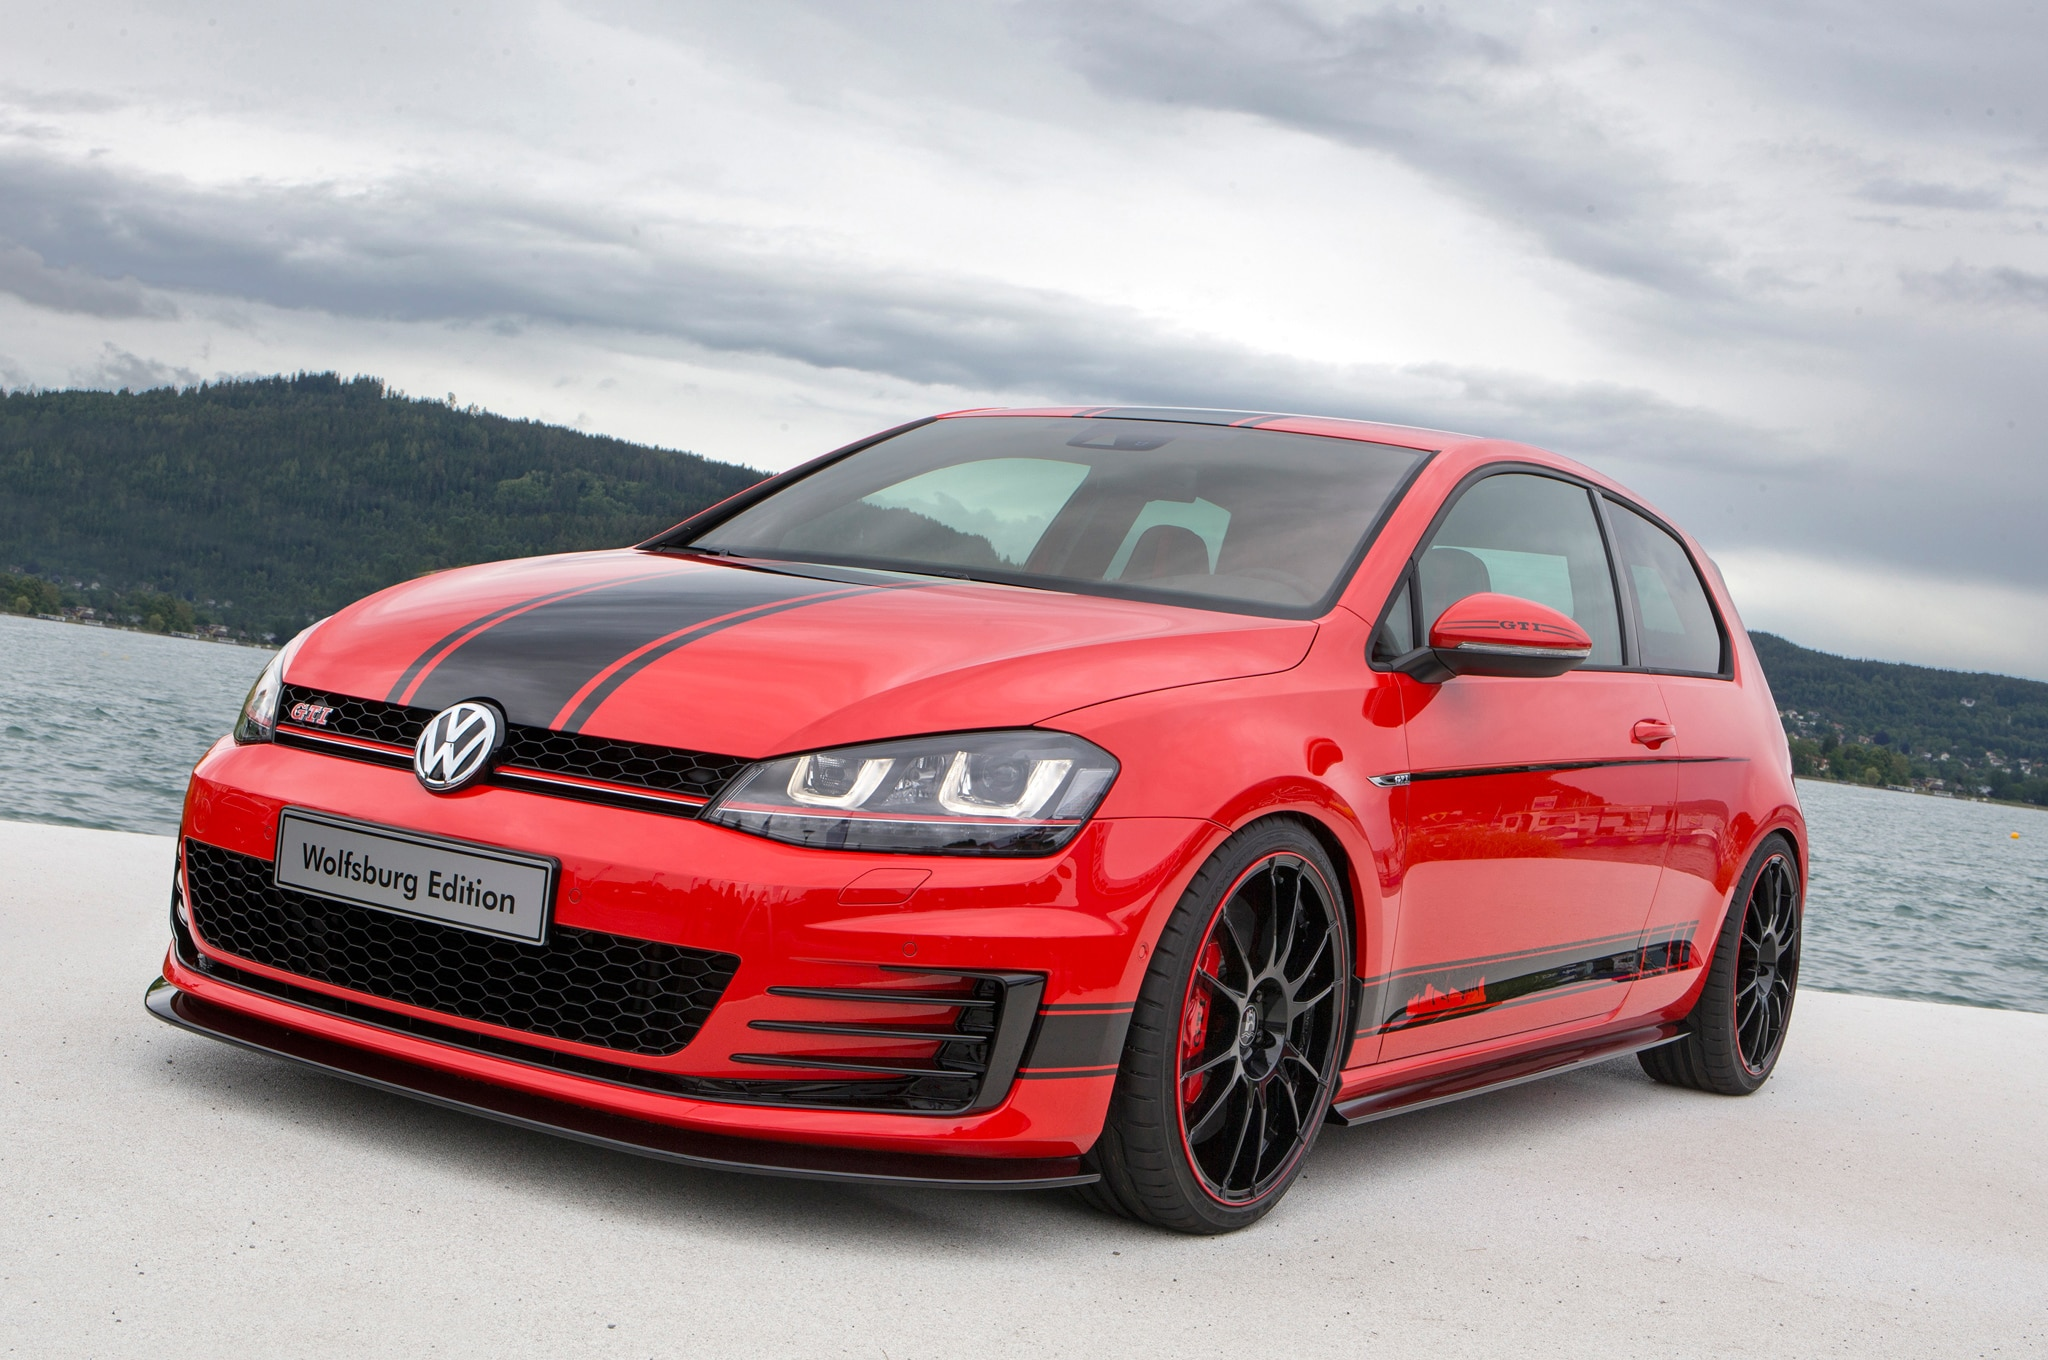 Volkswagen Golf GTI Wolfsburg Edition Front Three Quarter